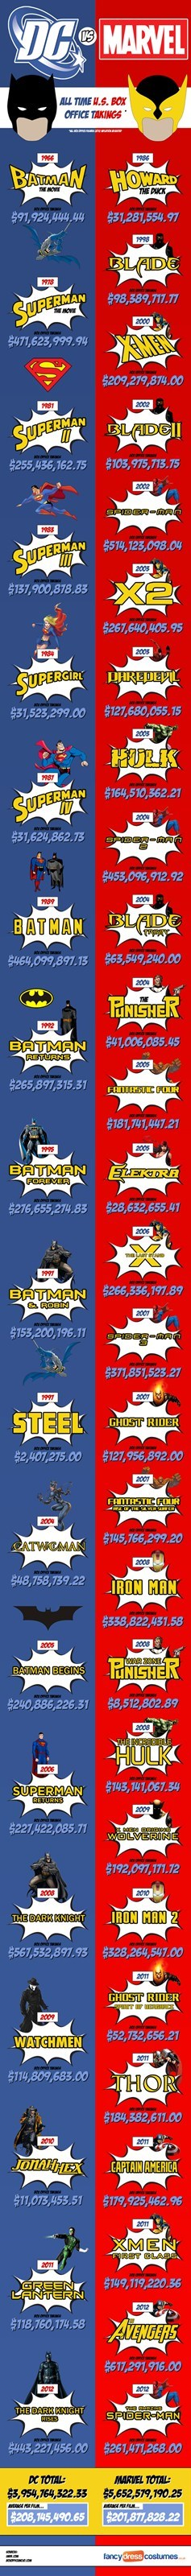 comics,DC,infographic,marvel,superheroes